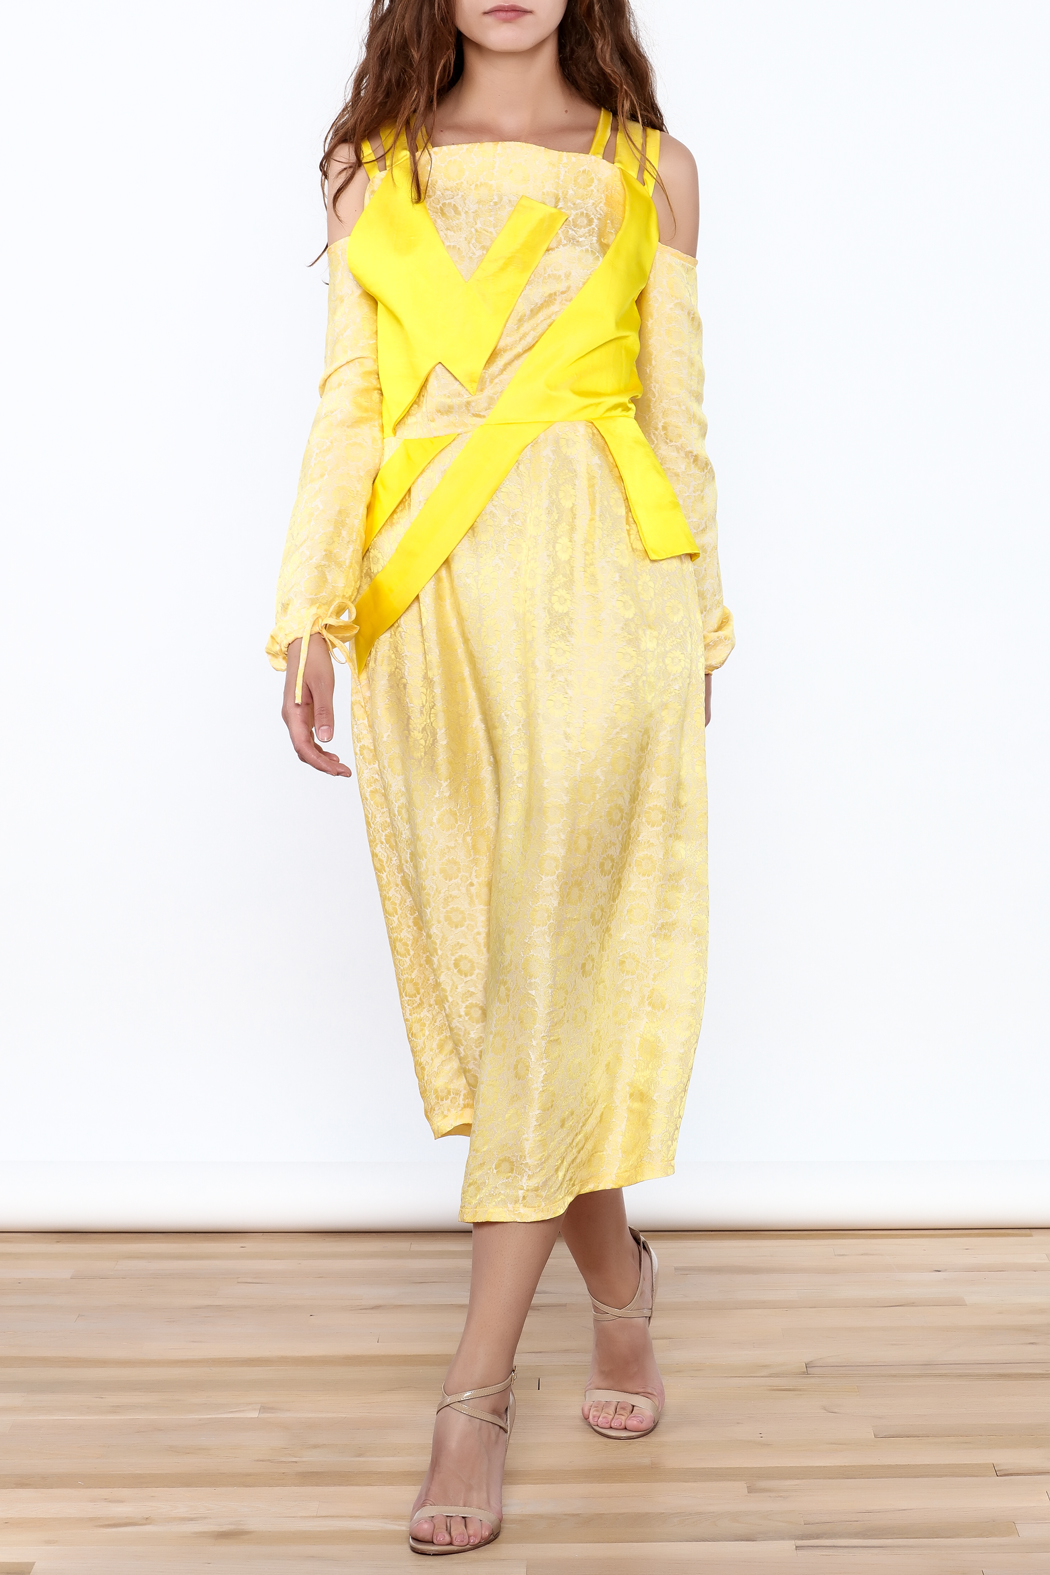 Dawn Sunflower Floral Yellow Midi Dress - Main Image